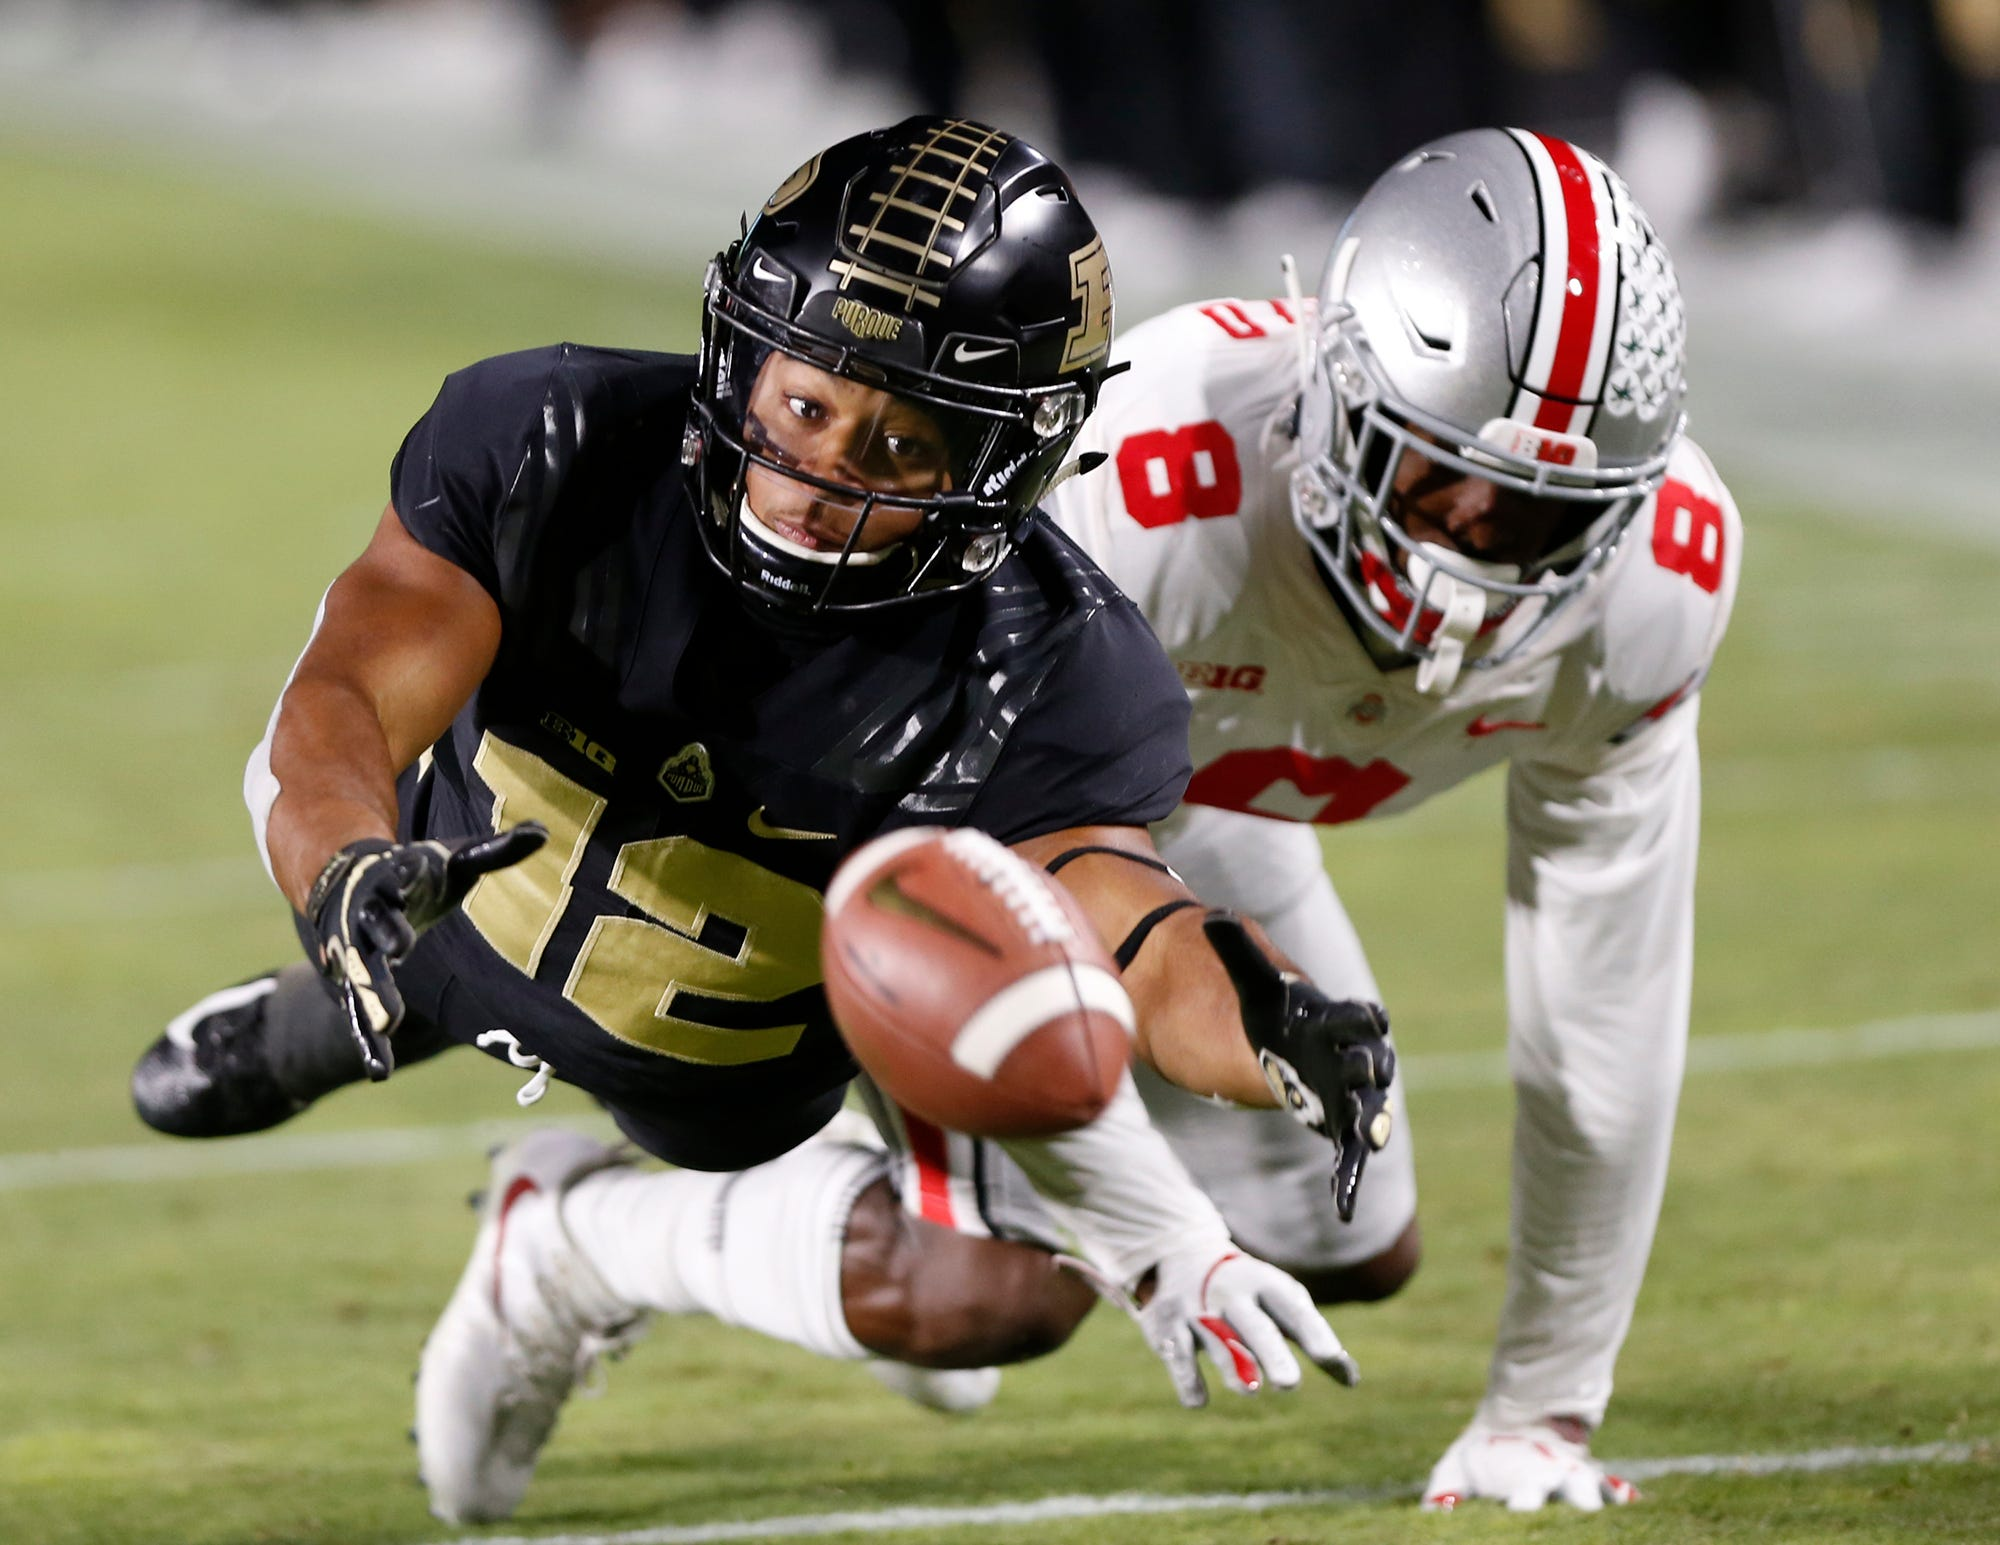 Jared Sparks of Purdue is whistled for offensive pass interference as he tries to make a catch against Kendall Sheffield of Ohio State in the first half Saturday, October 20, 2018, at Ross-Ade Stadium.